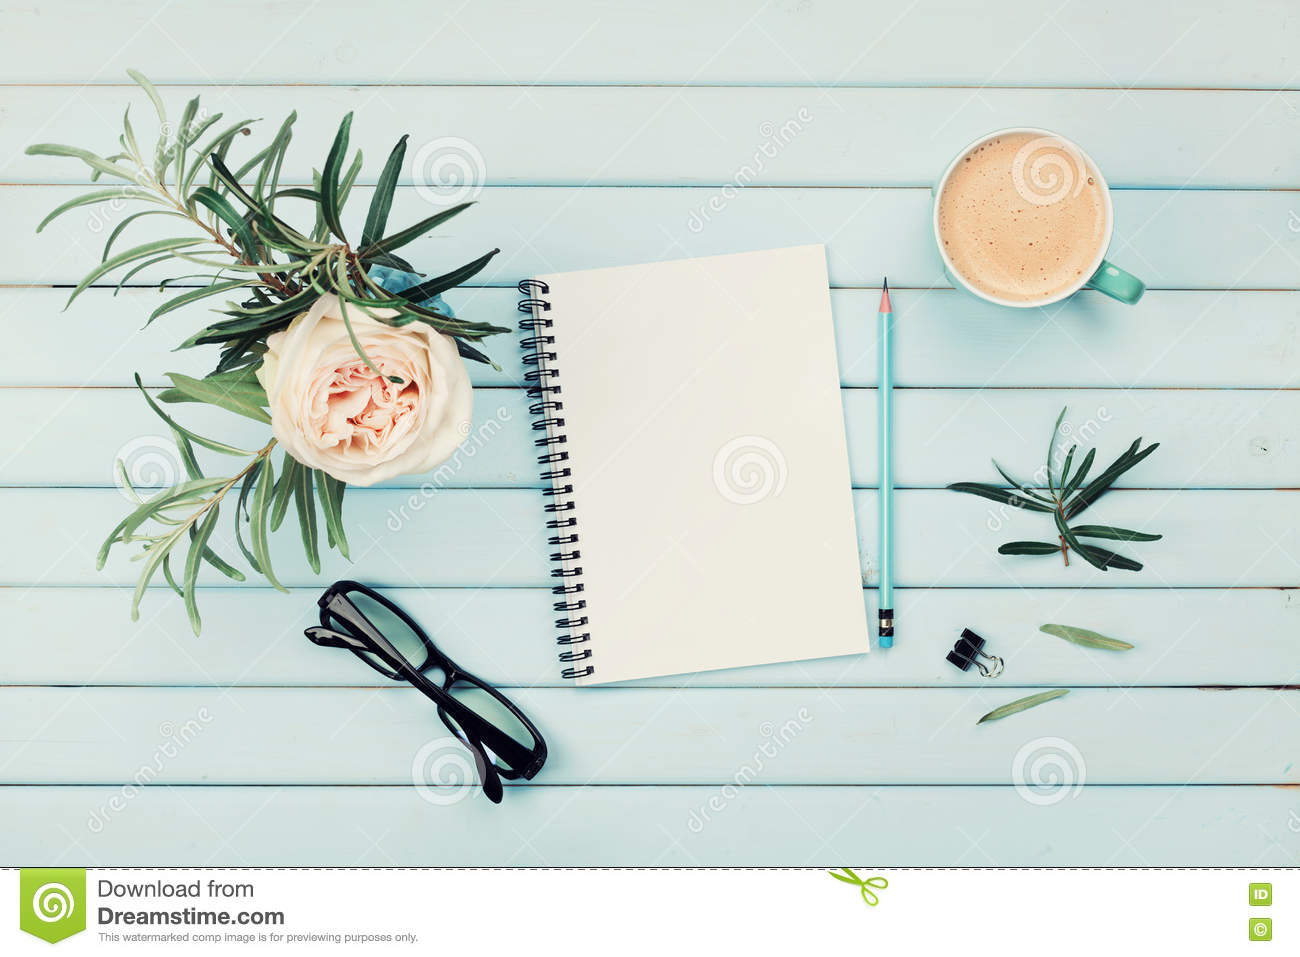 Morning coffee cup, clean notebook, pencil, eyeglasses and vintage rose flower in vase on blue rustic table top view. Flat lay.